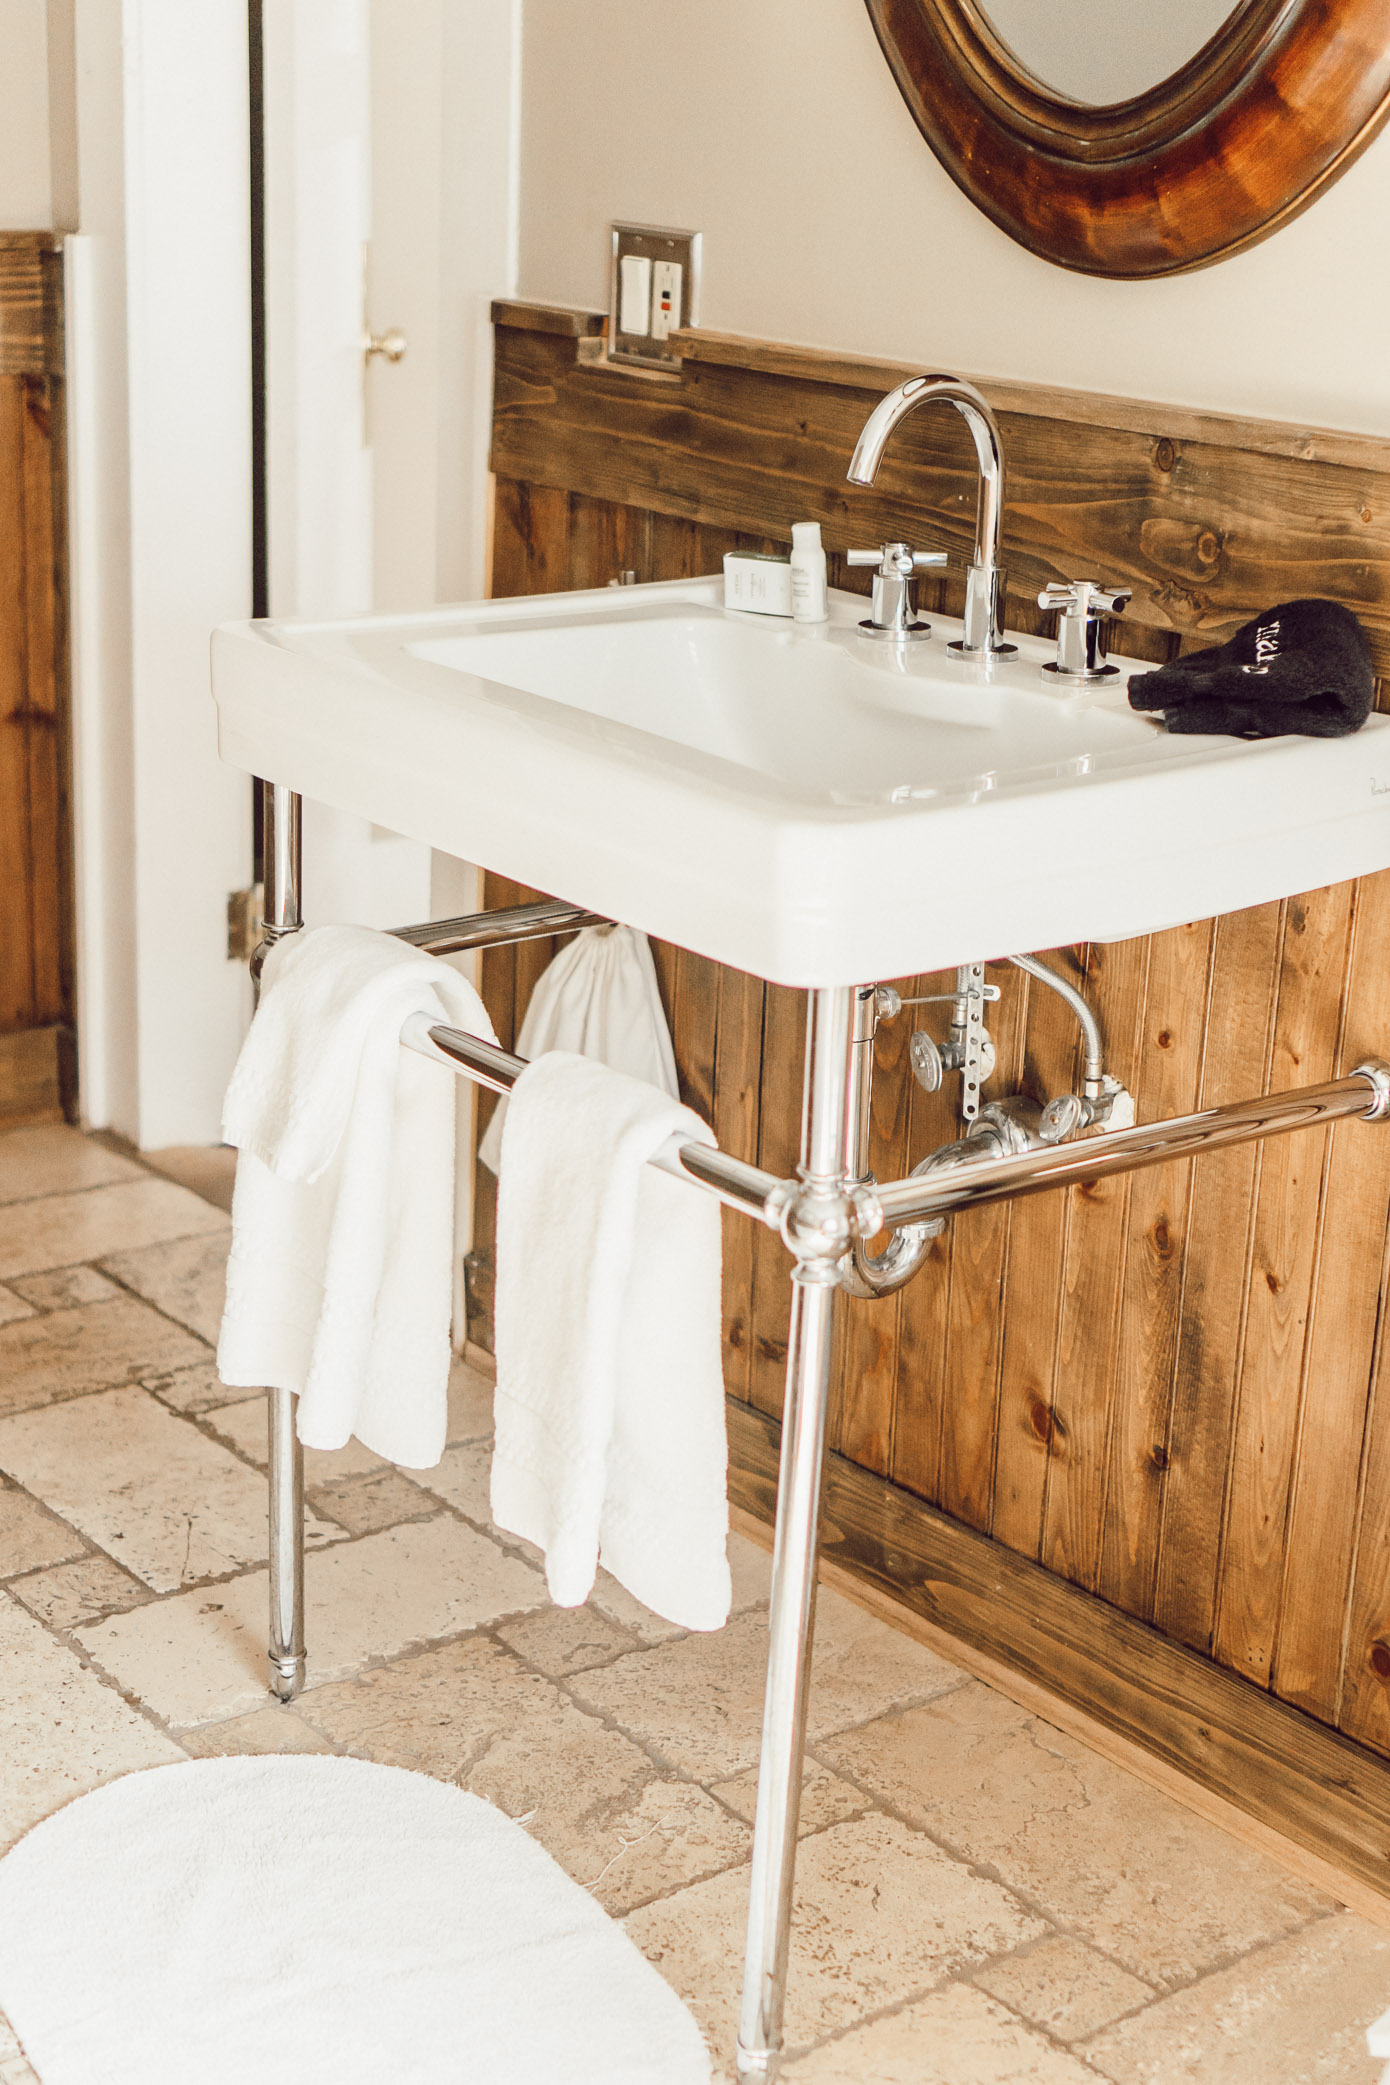 Vintage Inspired Sink | Blowing Rock Bed and Breakfast: The New Public House featured by popular North Carolina travel blogger Laura Leigh of Louella Reese